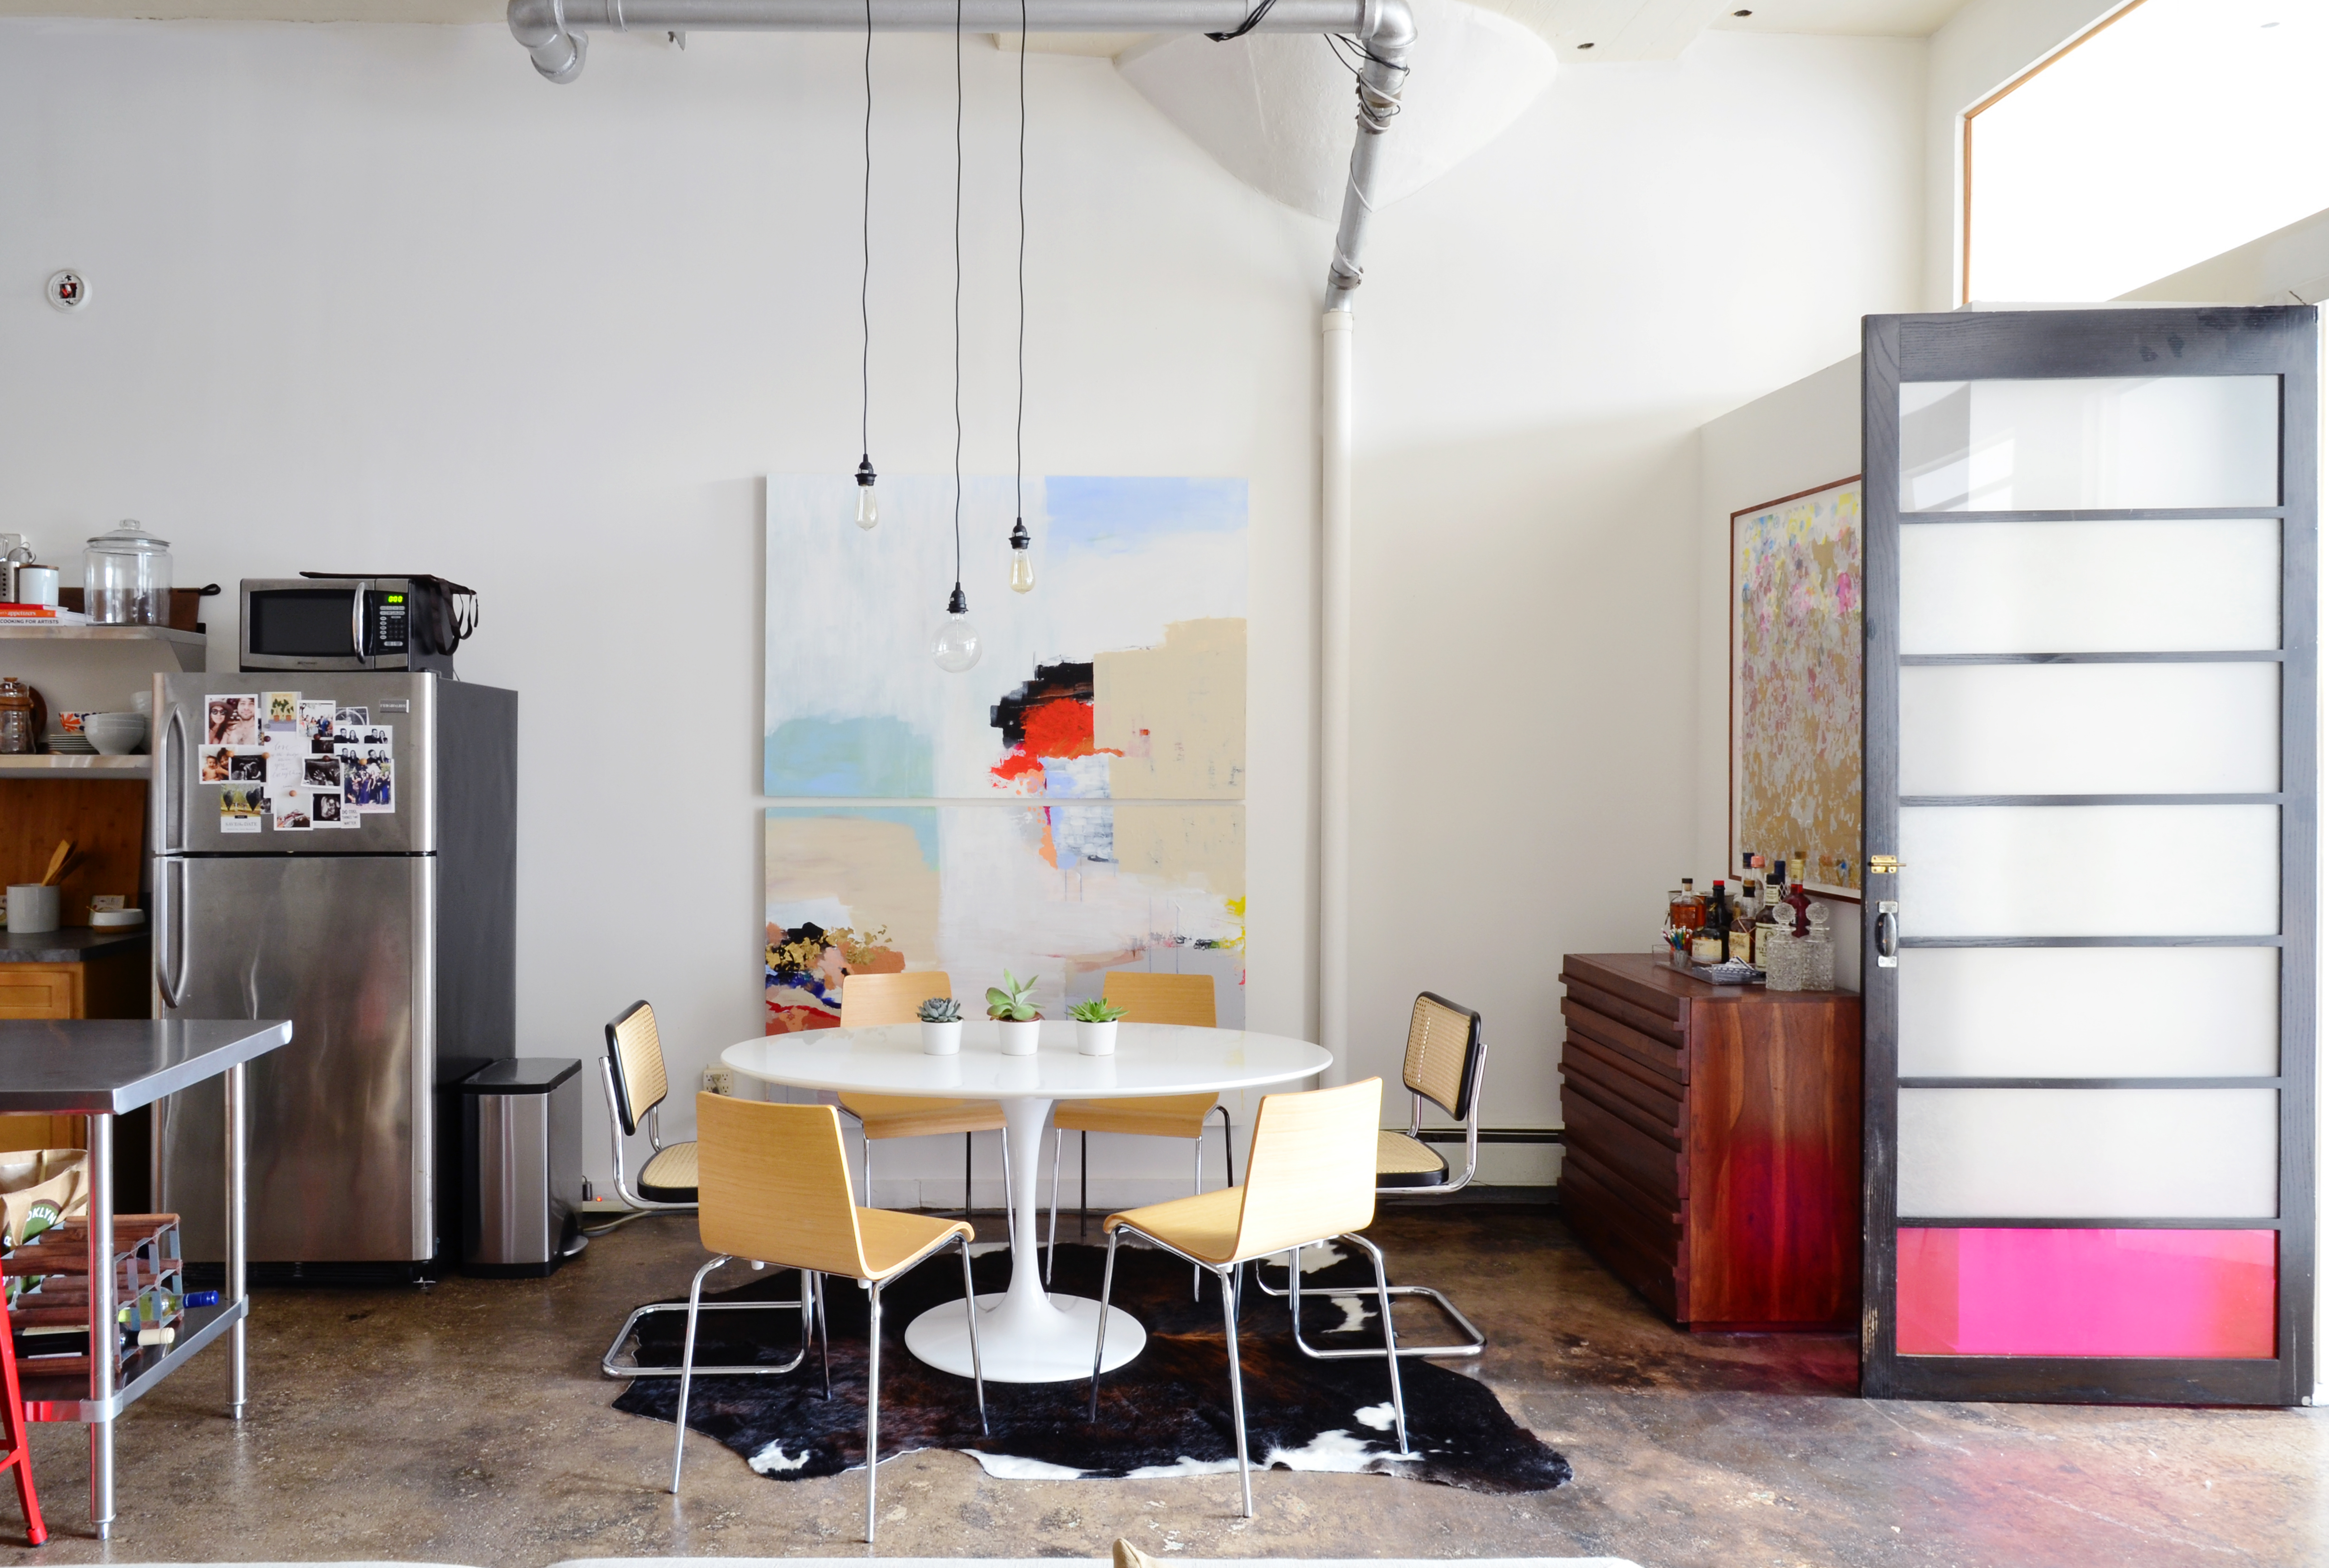 How to Paint a Concrete Floor: Easy